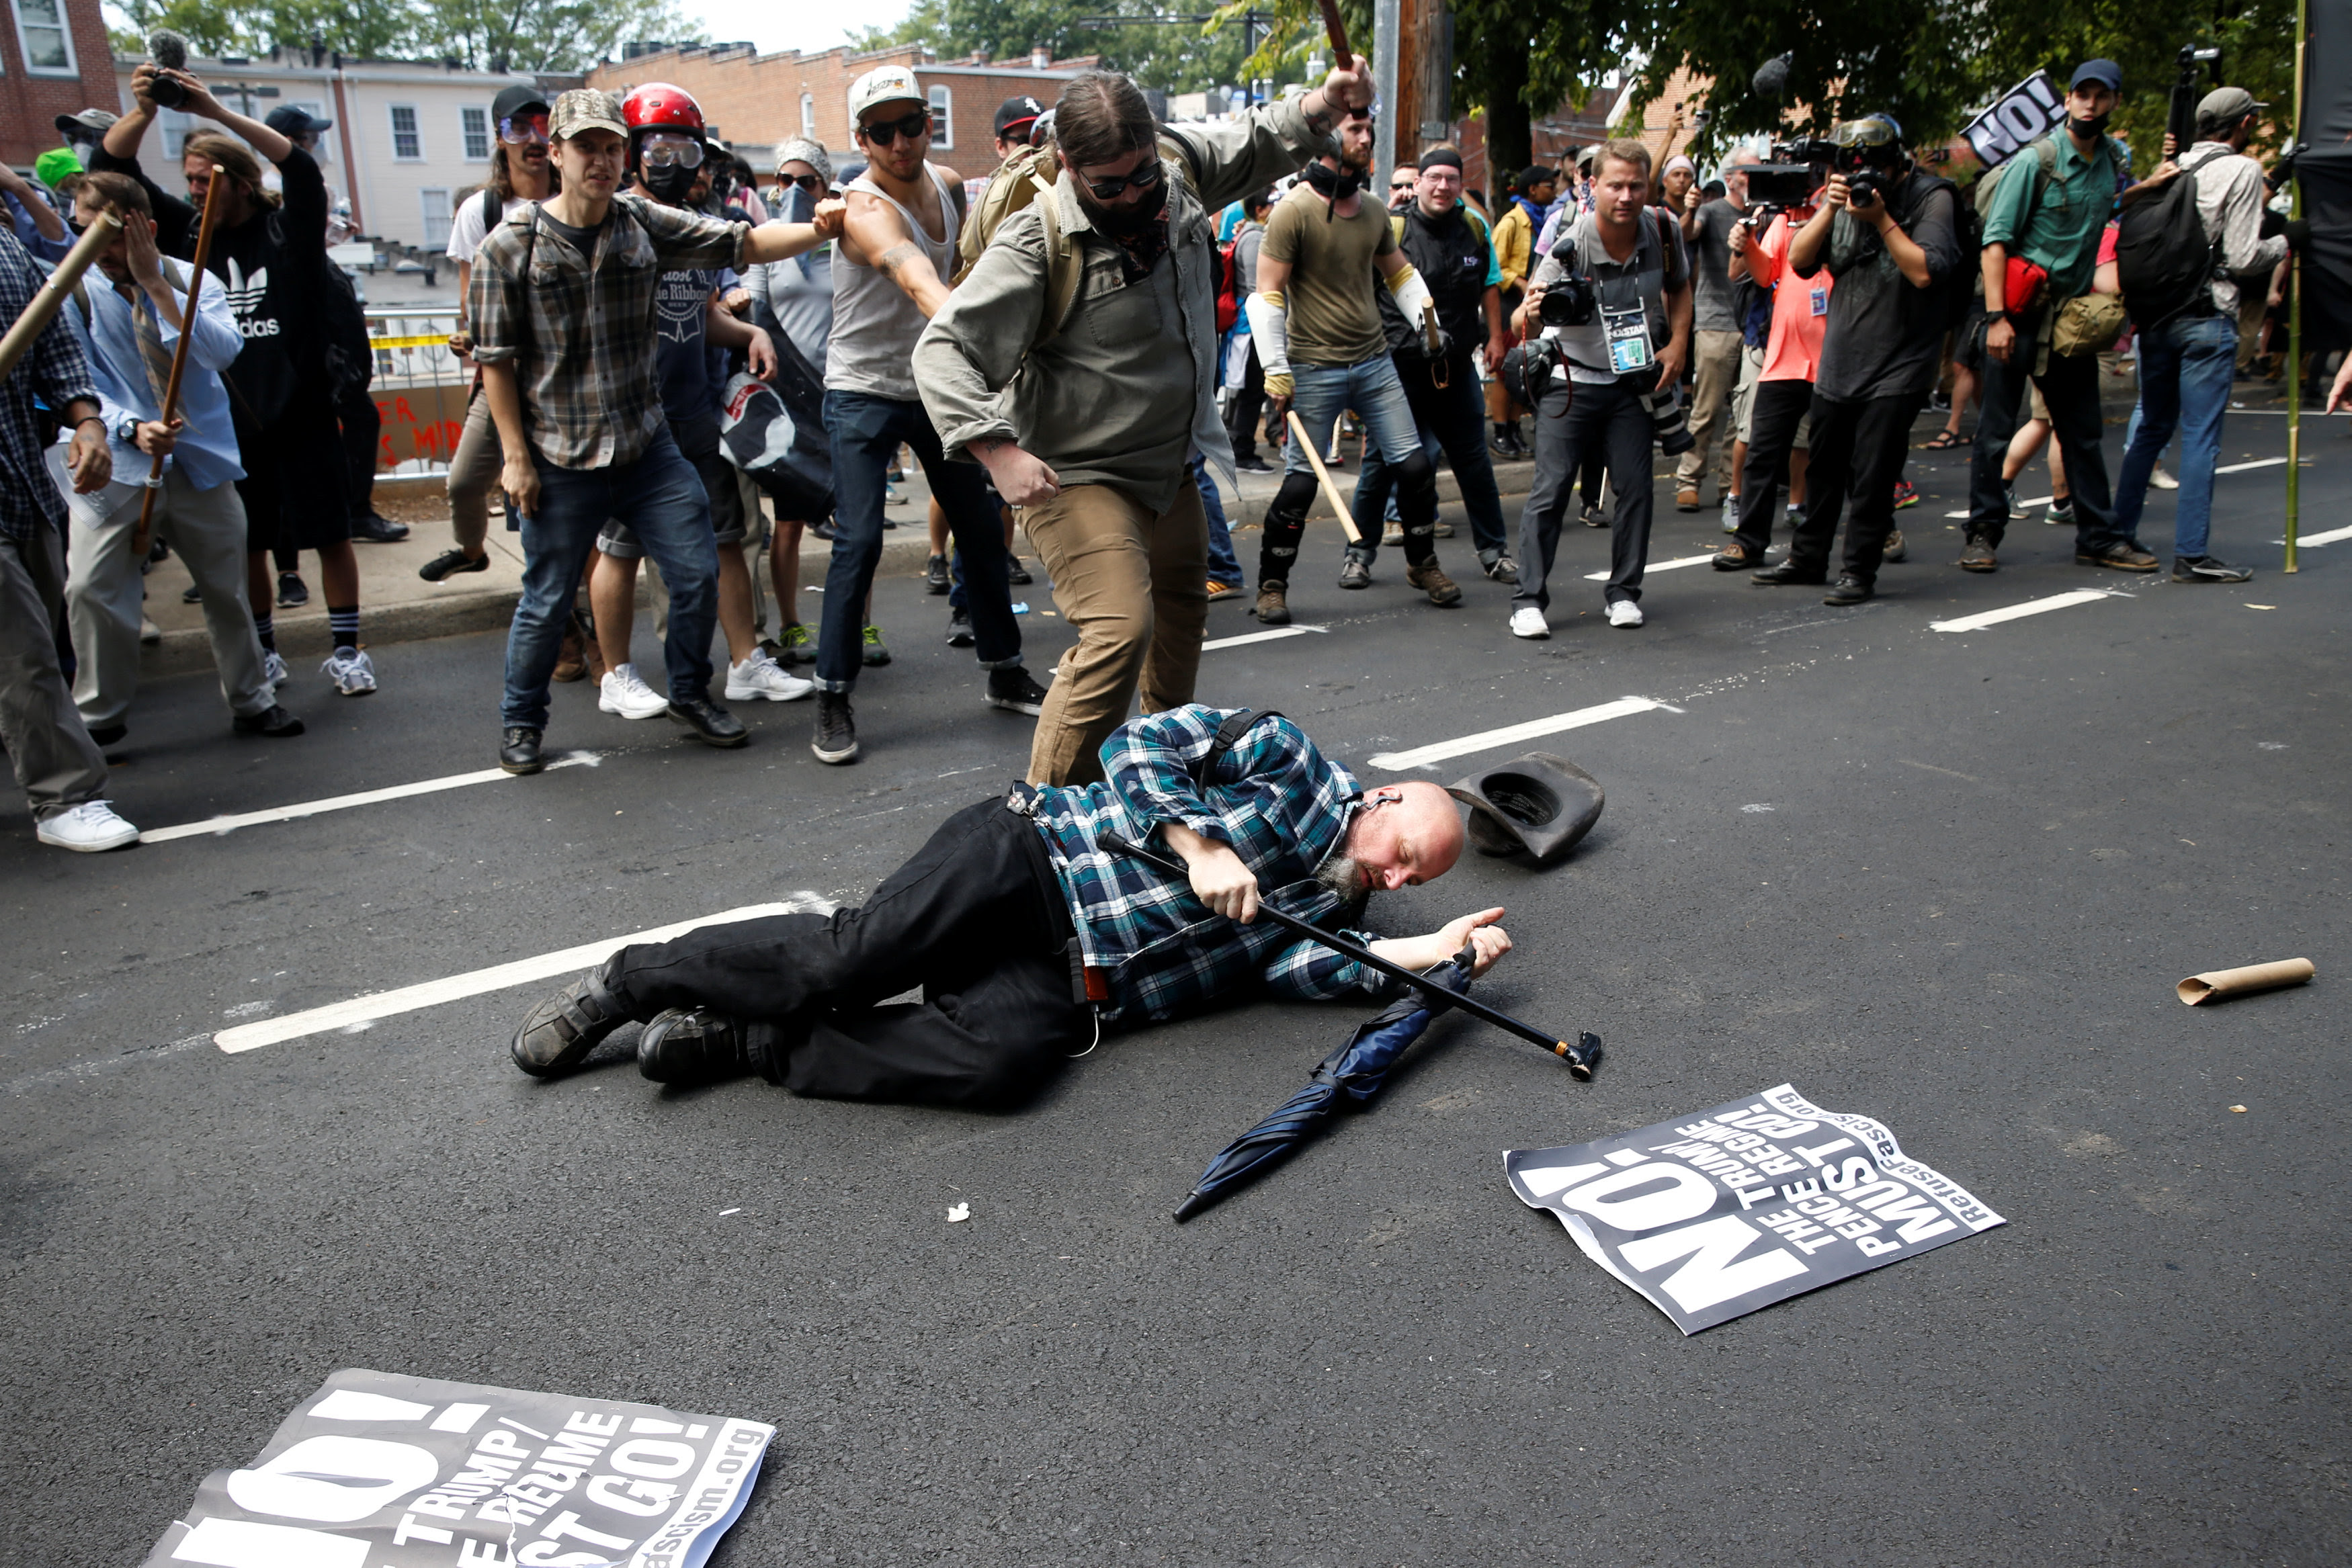 2017 08 12T170557Z 1054340927 RC1DC7EFF0F0 RTRMADP 3 VIRGINIA PROTESTS